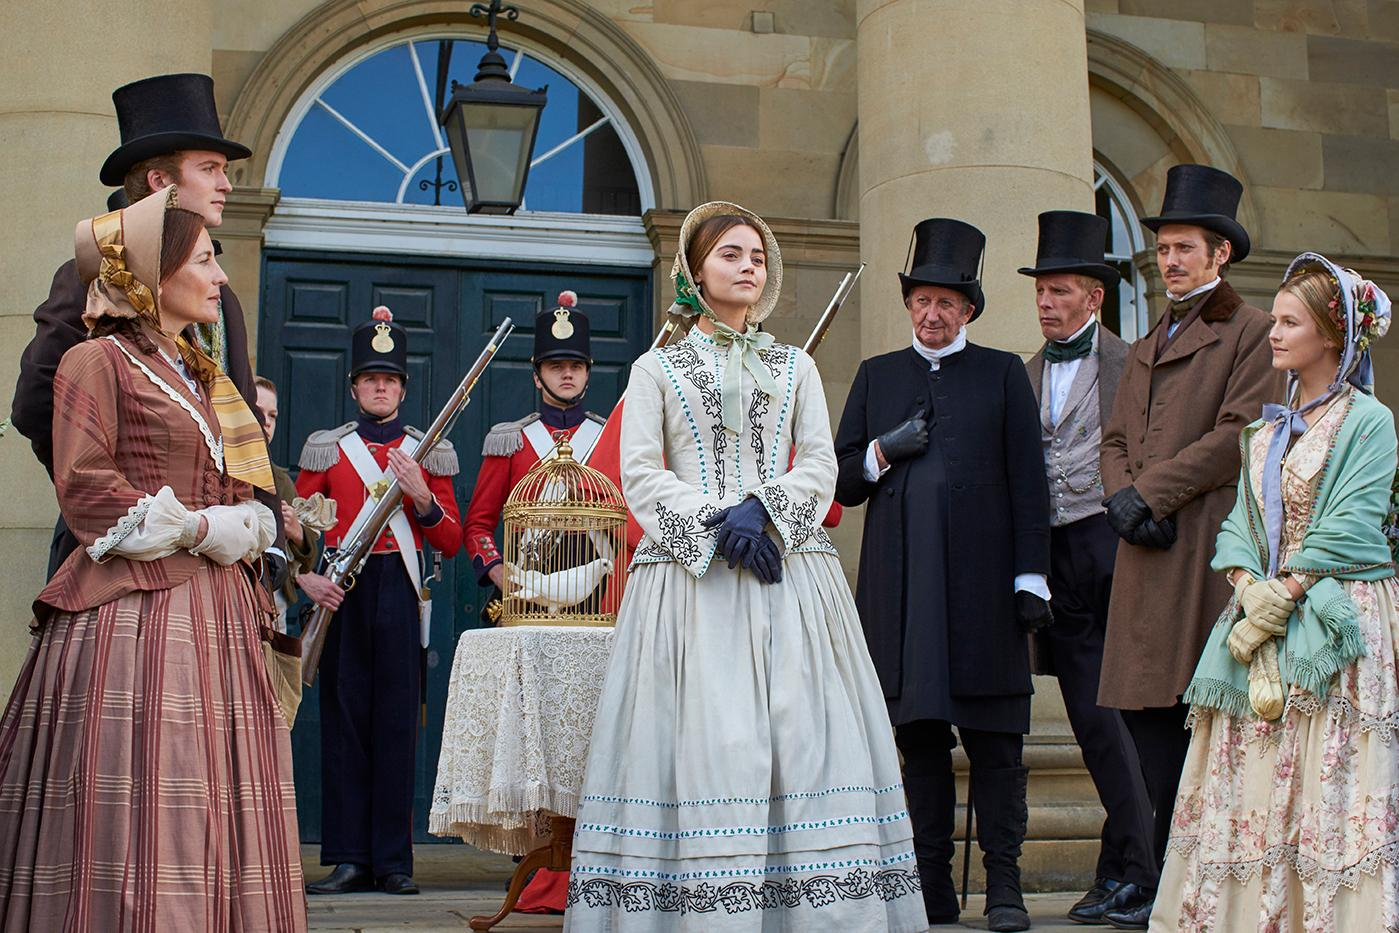 Jenna Coleman as Victoria in Dublin. Photo: Justin Slee/ITV Plc for MASTERPIECE